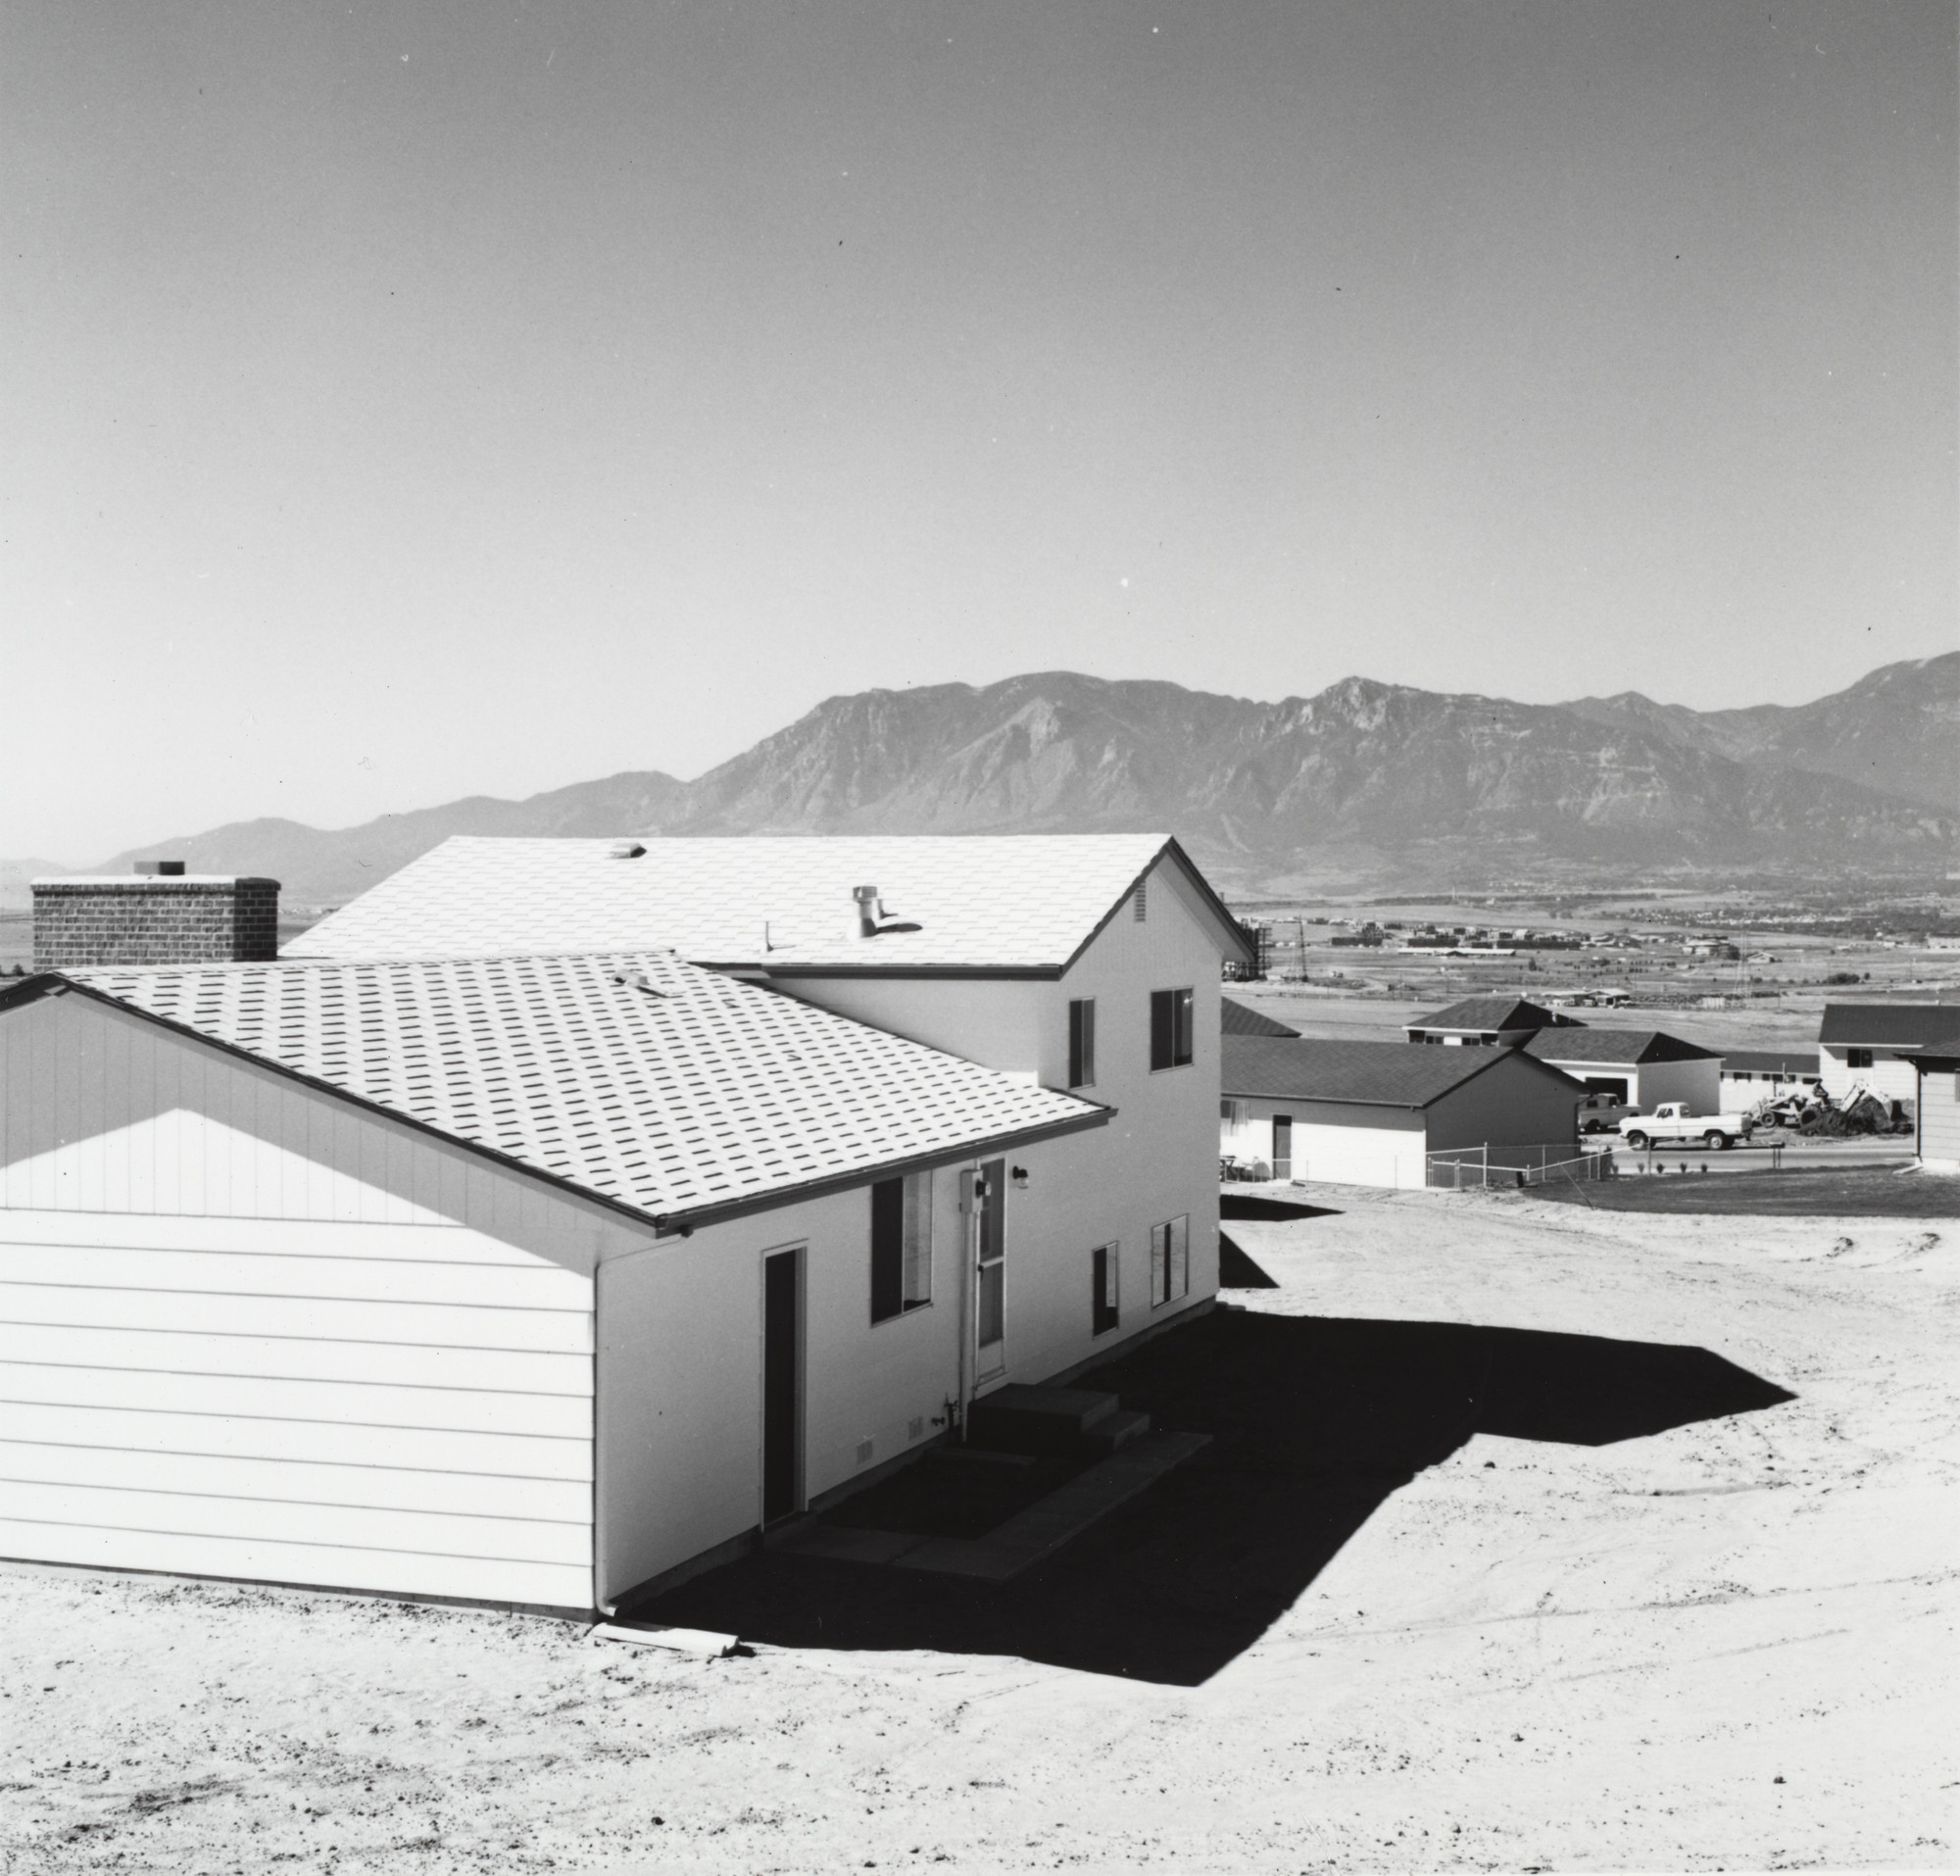 Robert Adams. Newly Completed Tract House, Colorado Springs. 1968